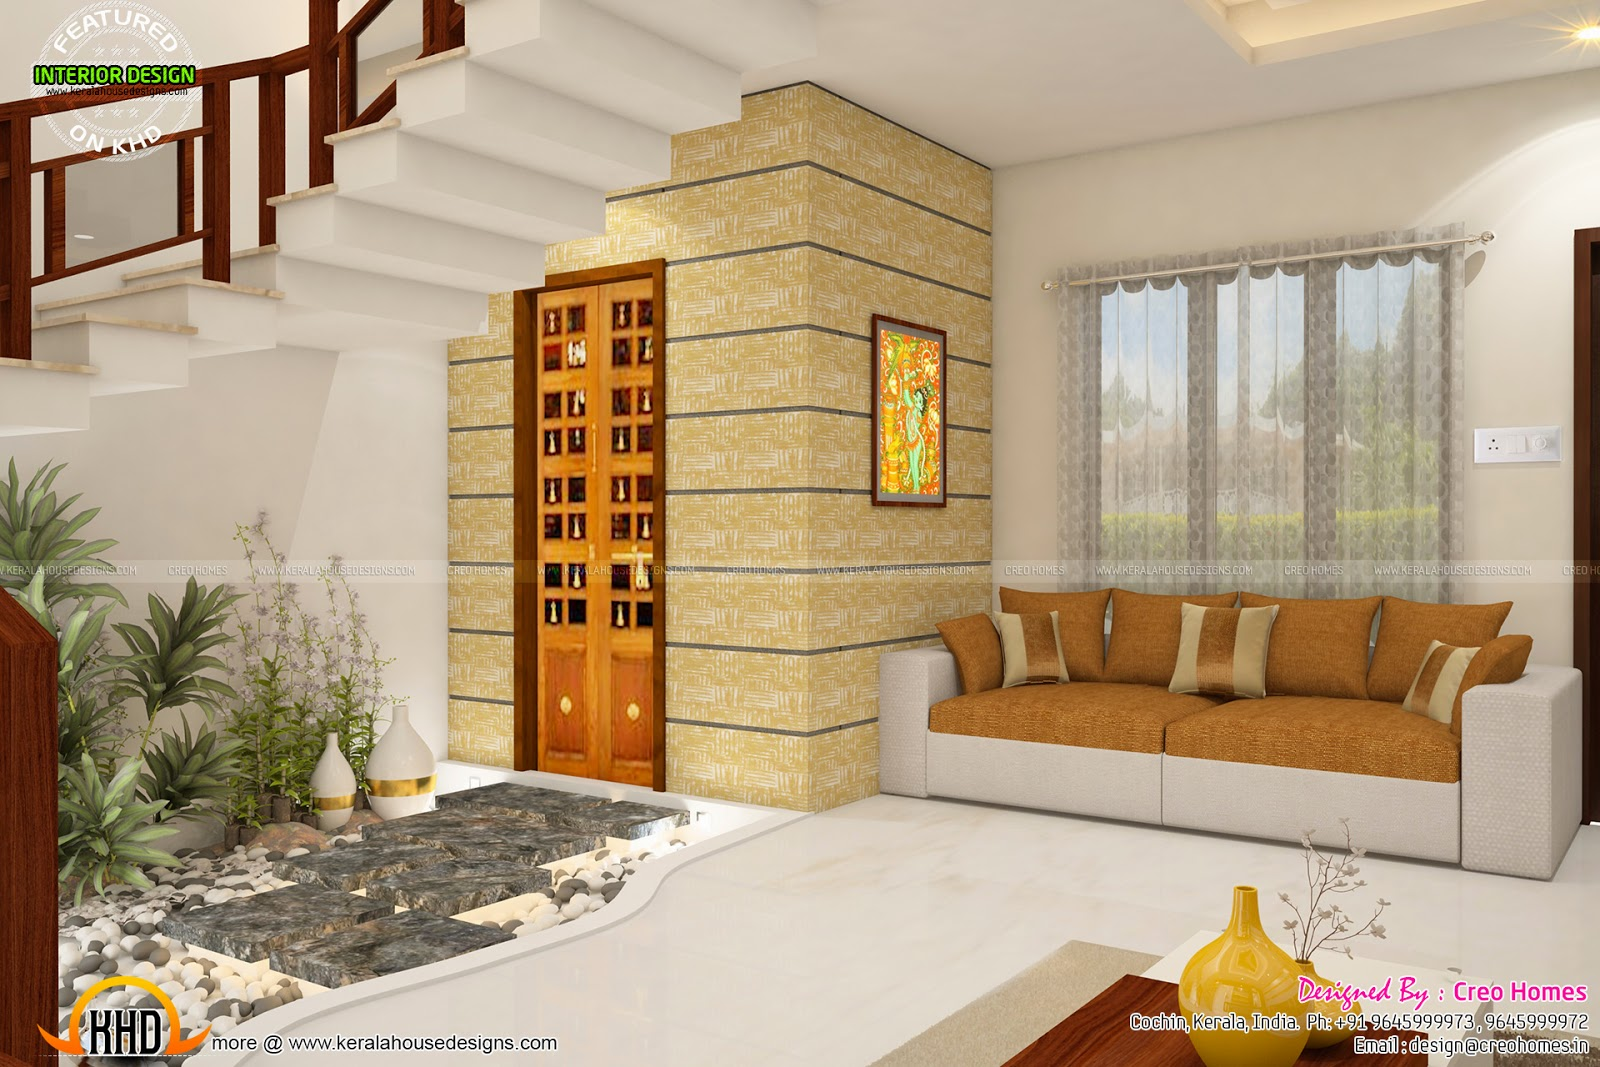 Total home interior solutions by creo homes kerala home for Interior home decoration pictures